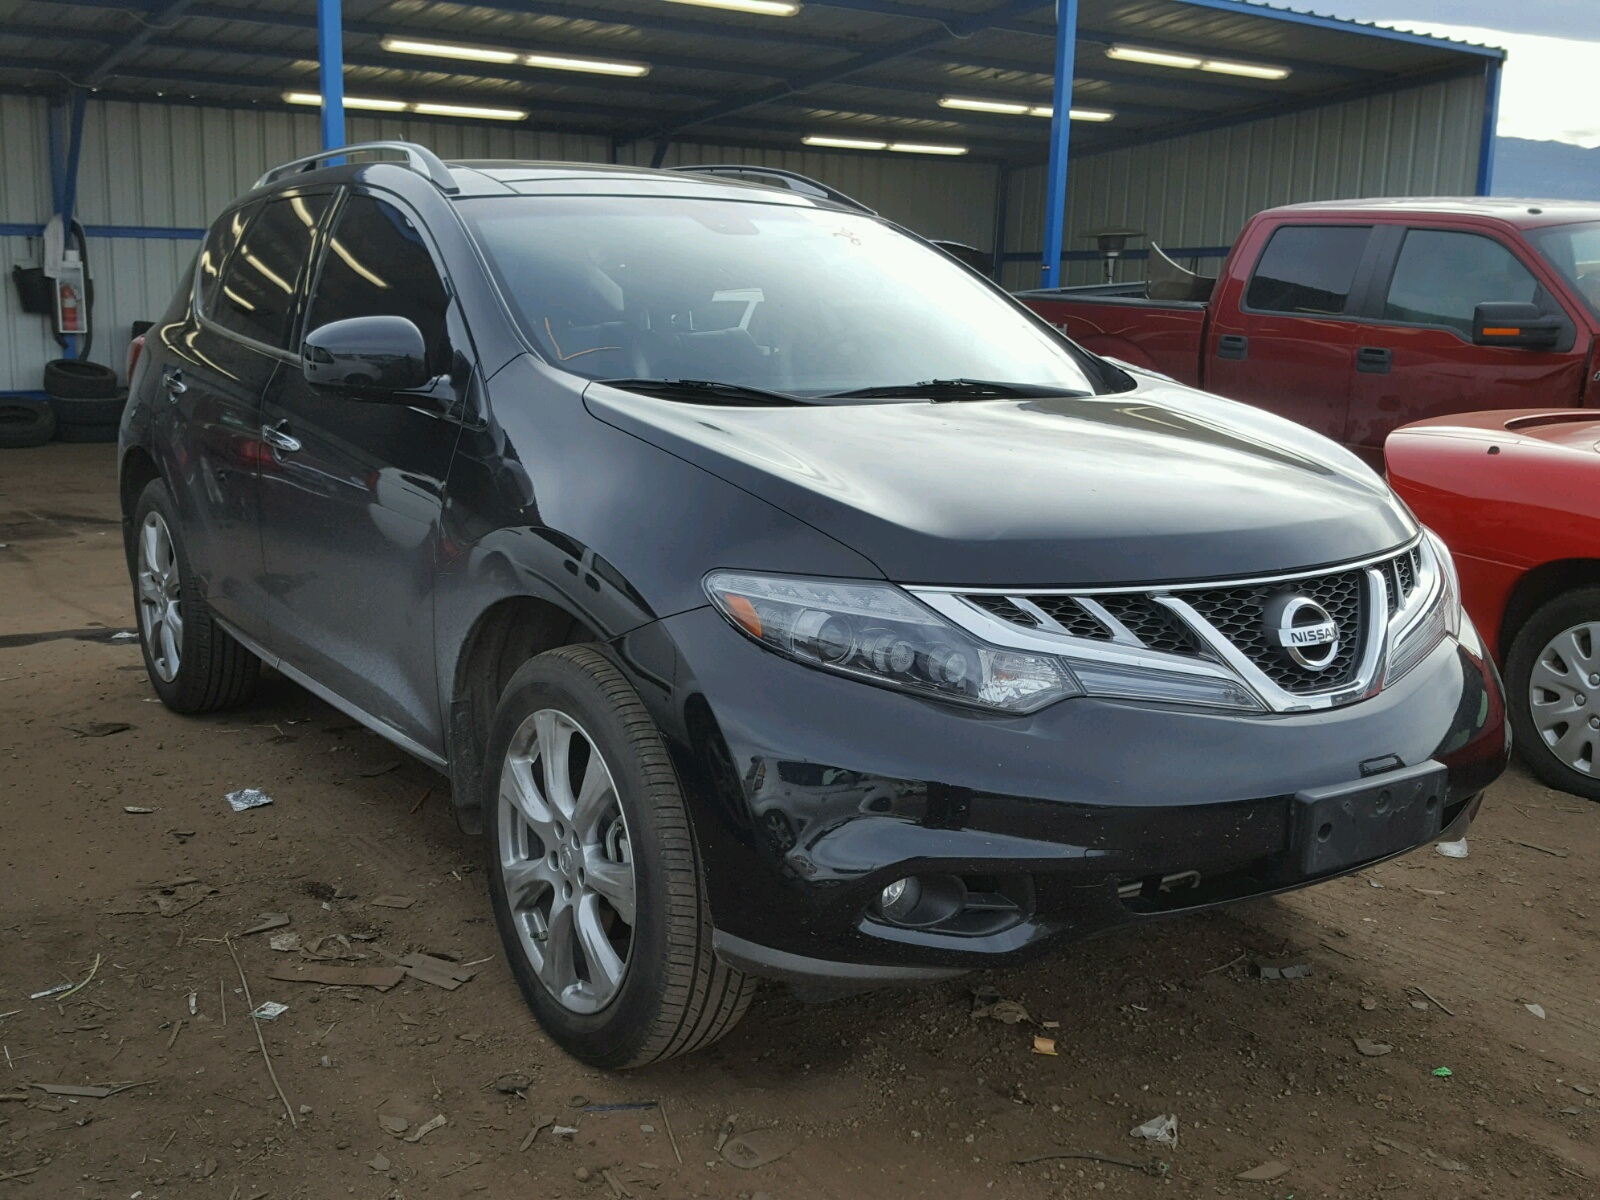 sale auto img nashville in murano nissan com used for tn cars